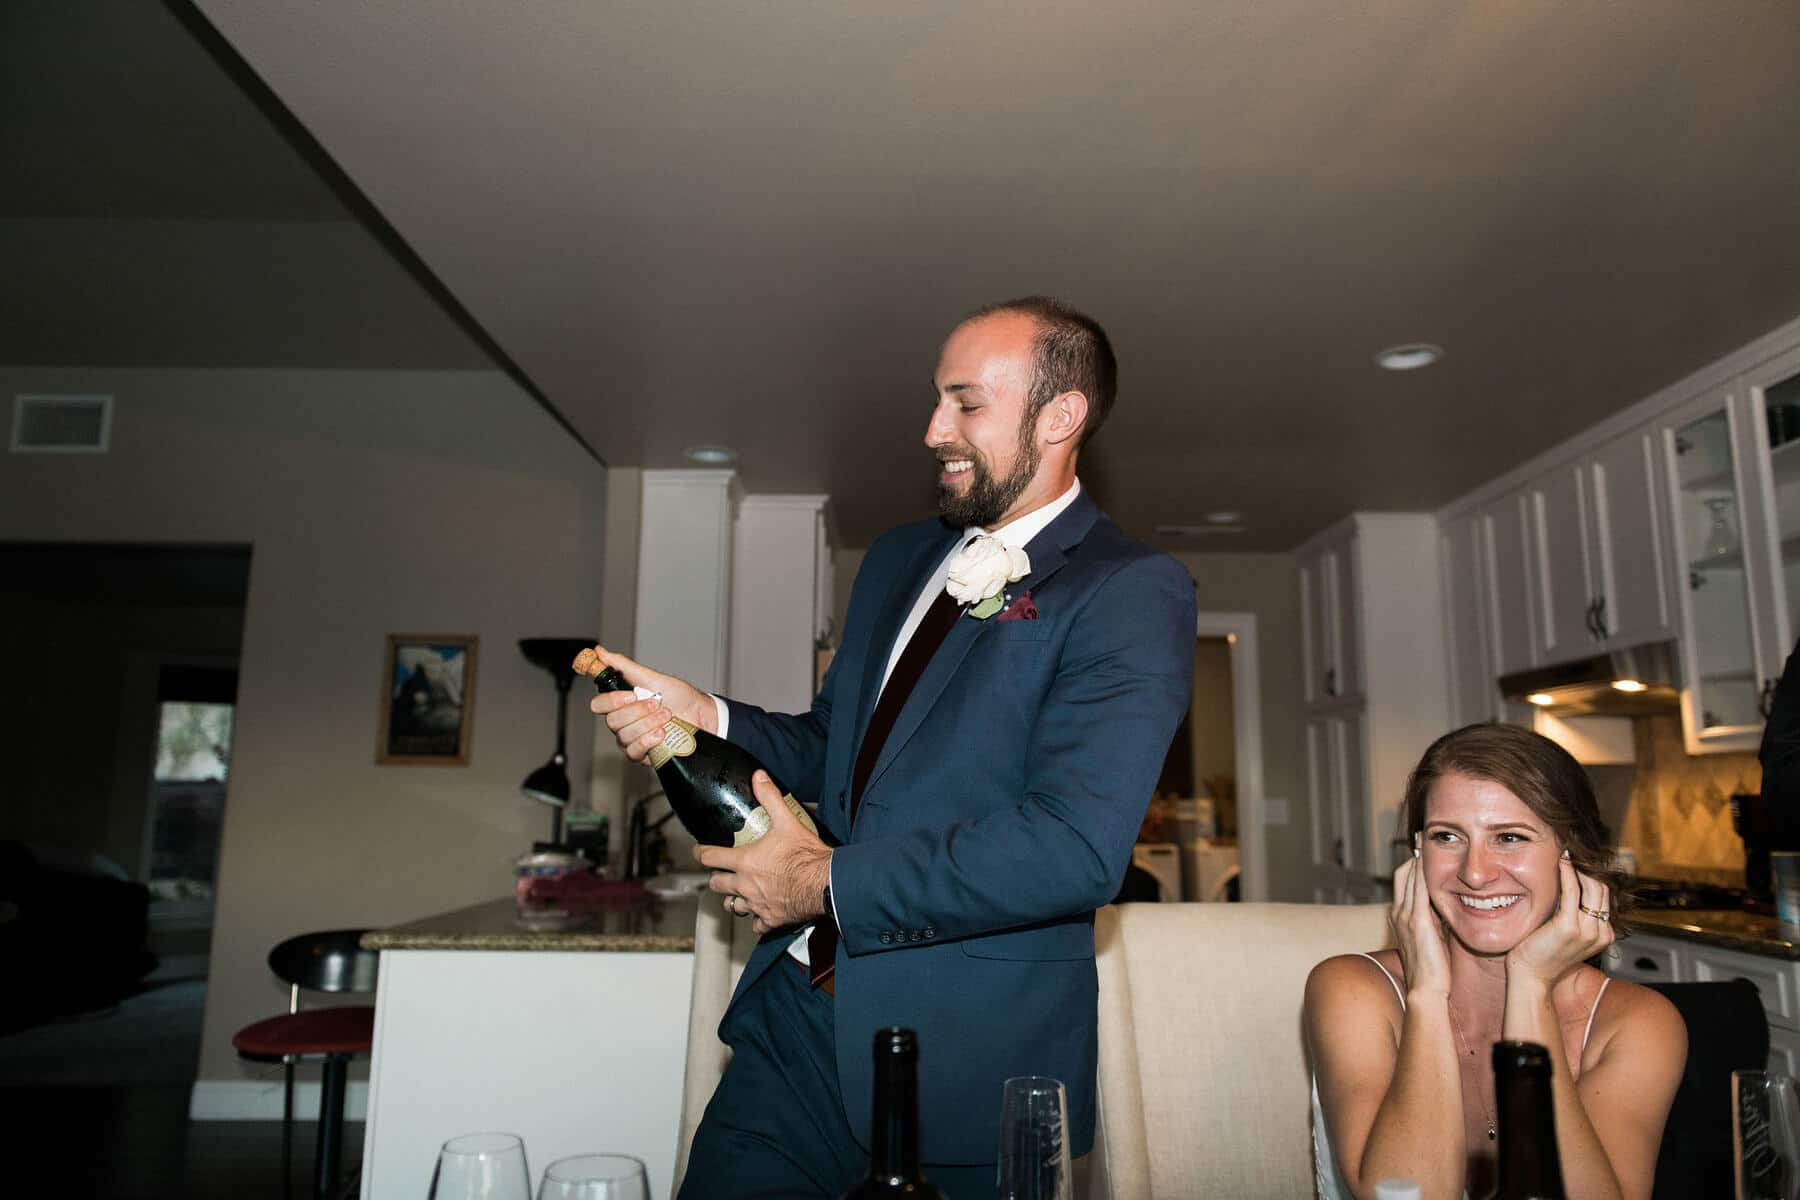 groom popping bottle of champagne while bride smiles and covers ears